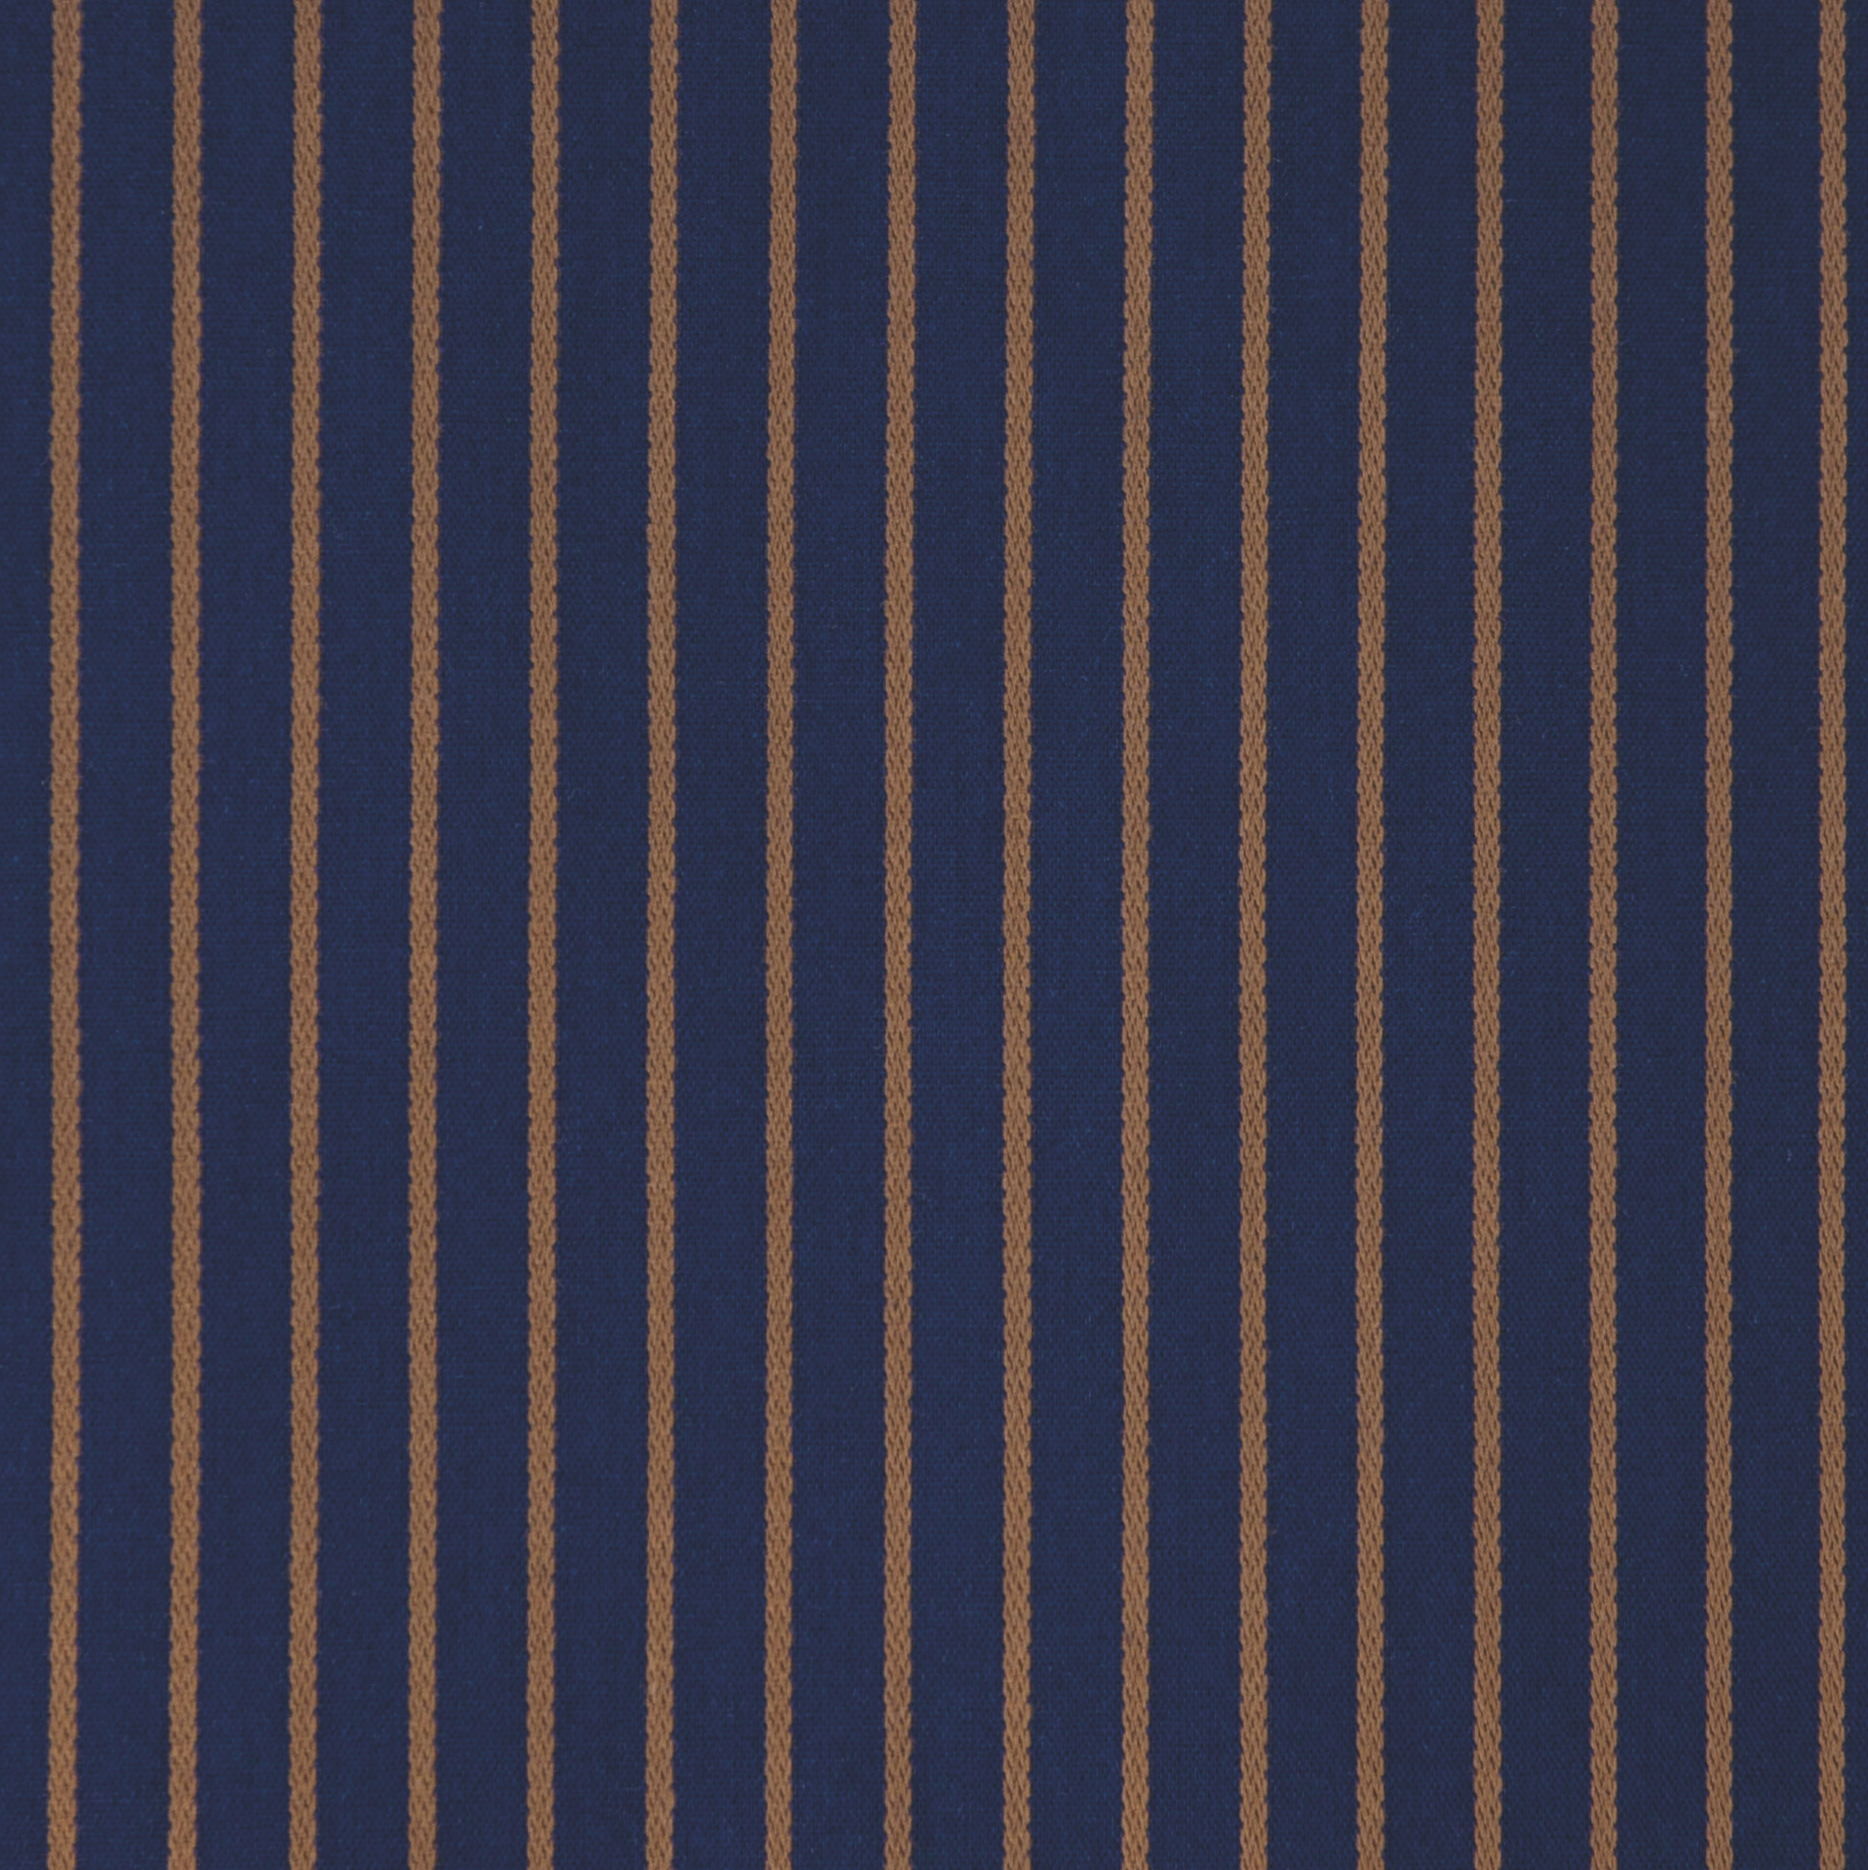 Buy tailor made shirts online - Presidents Range (CLEARANCE) - Navy with Tan Stripe